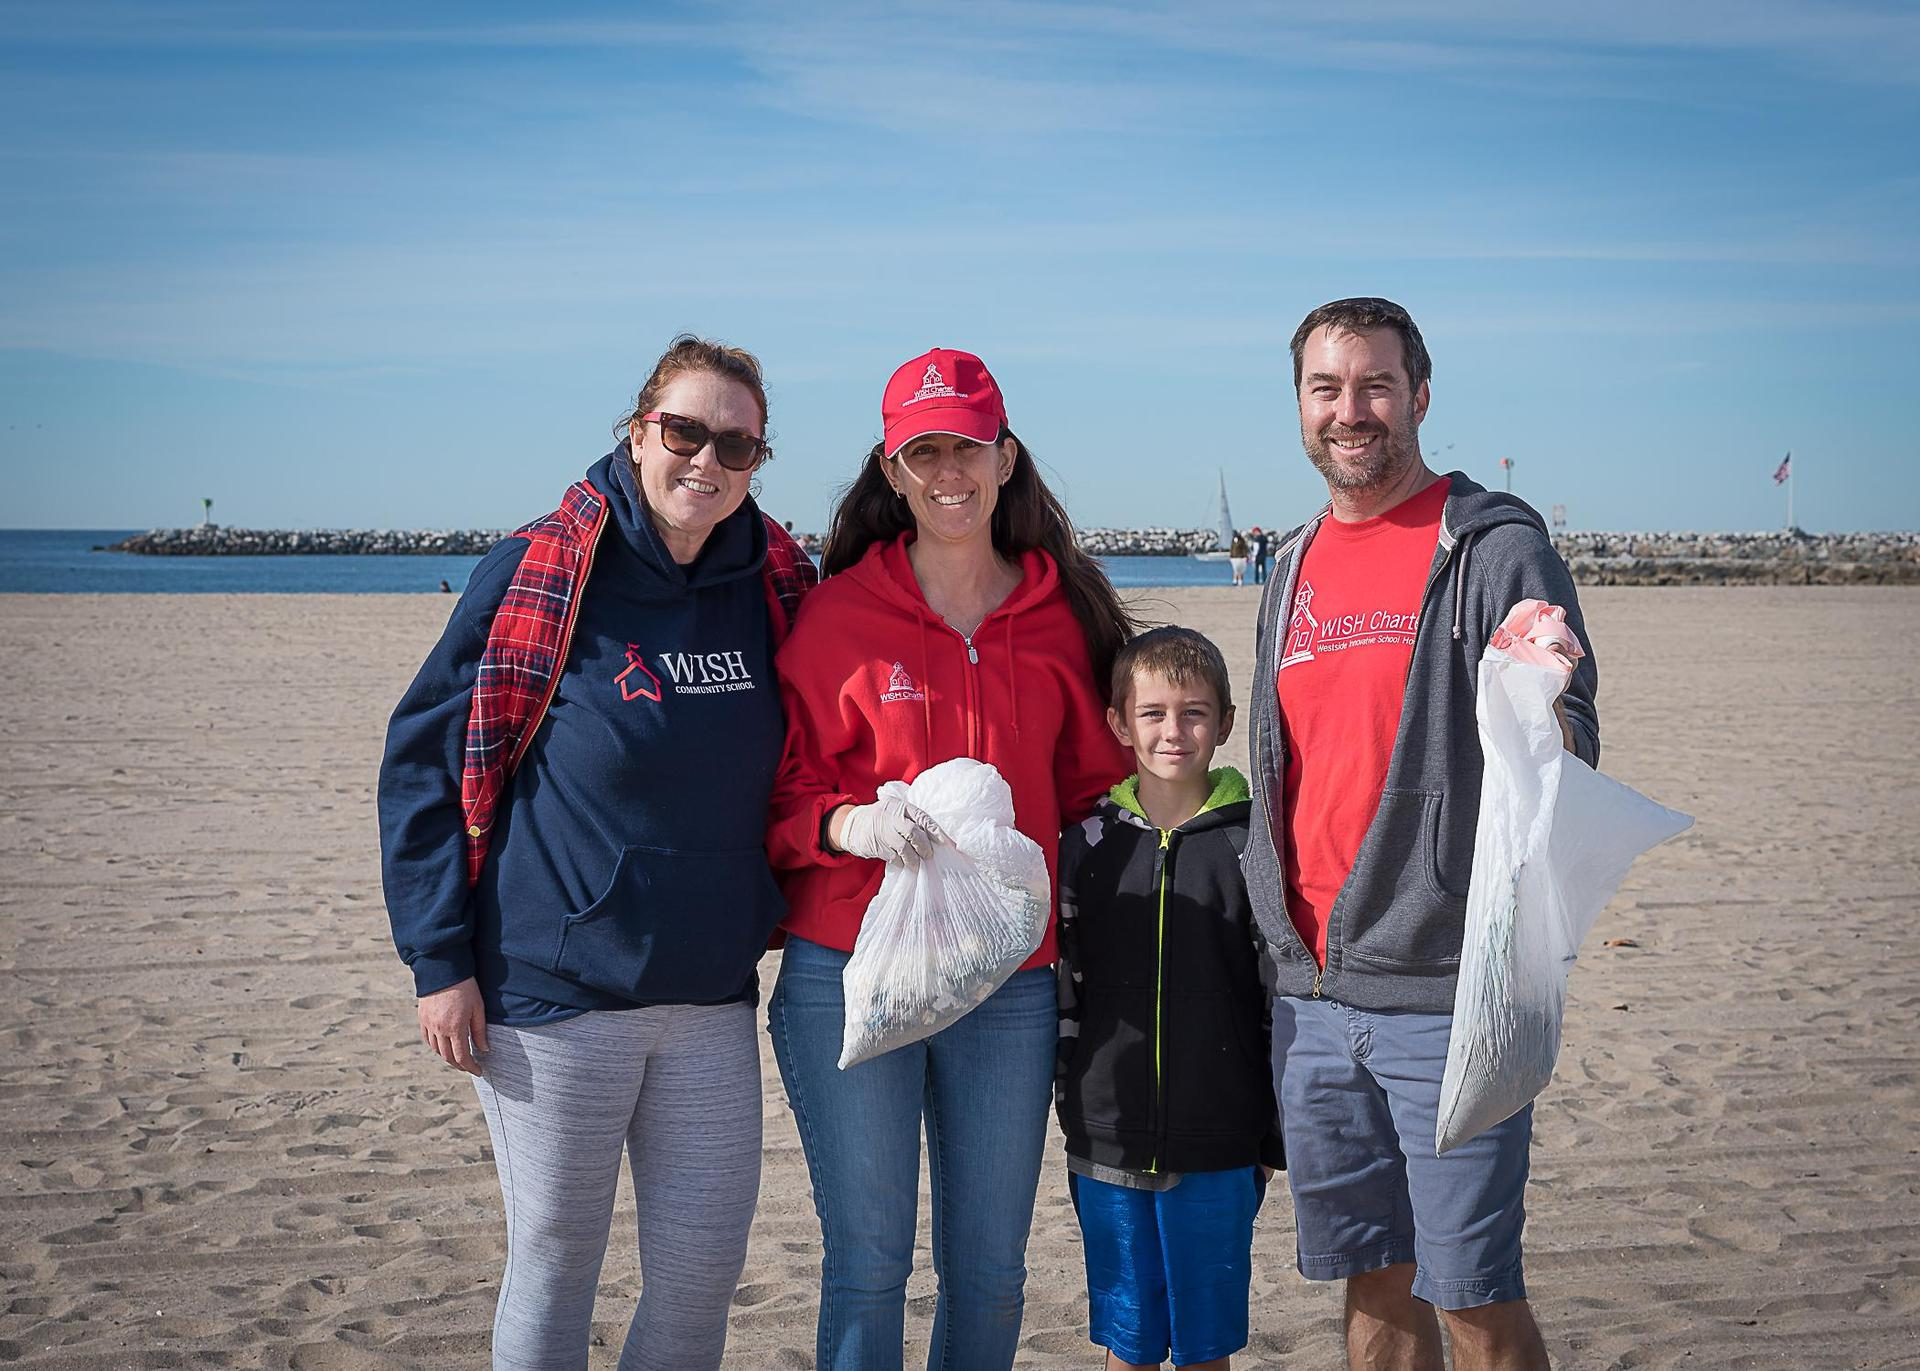 Parent volunteering at the beach clean-up